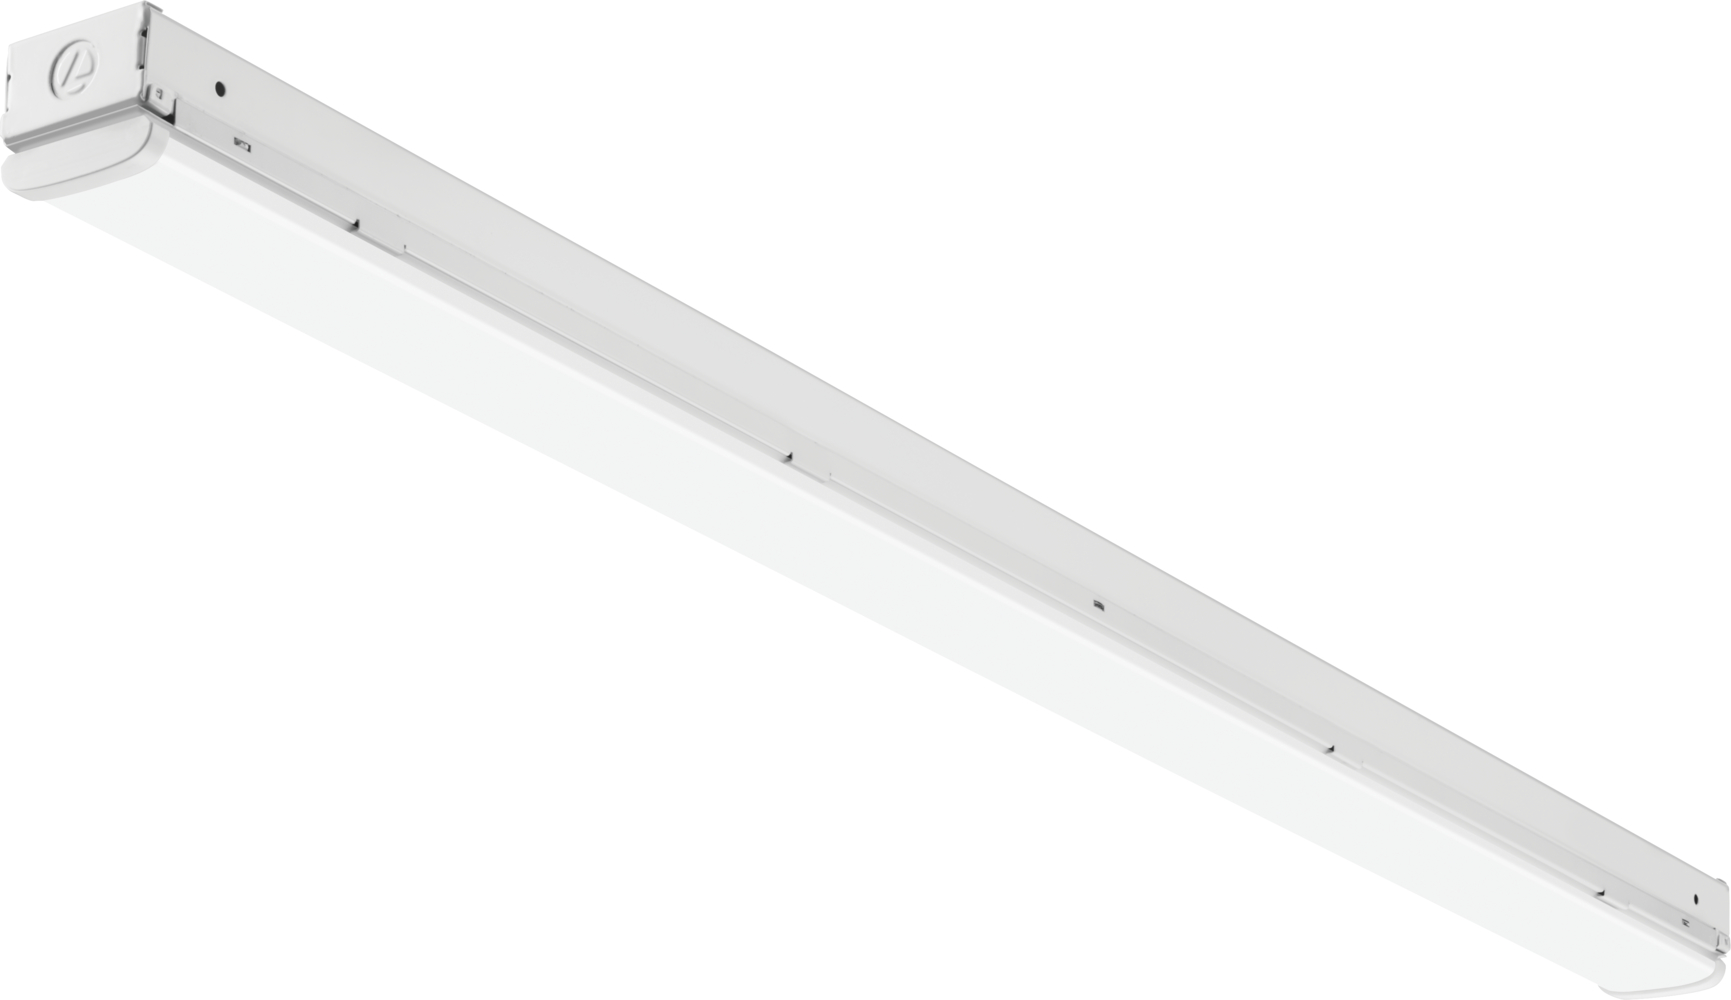 LITHONIA CSS-L48-ALO3-MVOLT-SWW3- 80CRI 4FT LED STRIP FIXTURE SWITCHABLE 35K/40K/50K